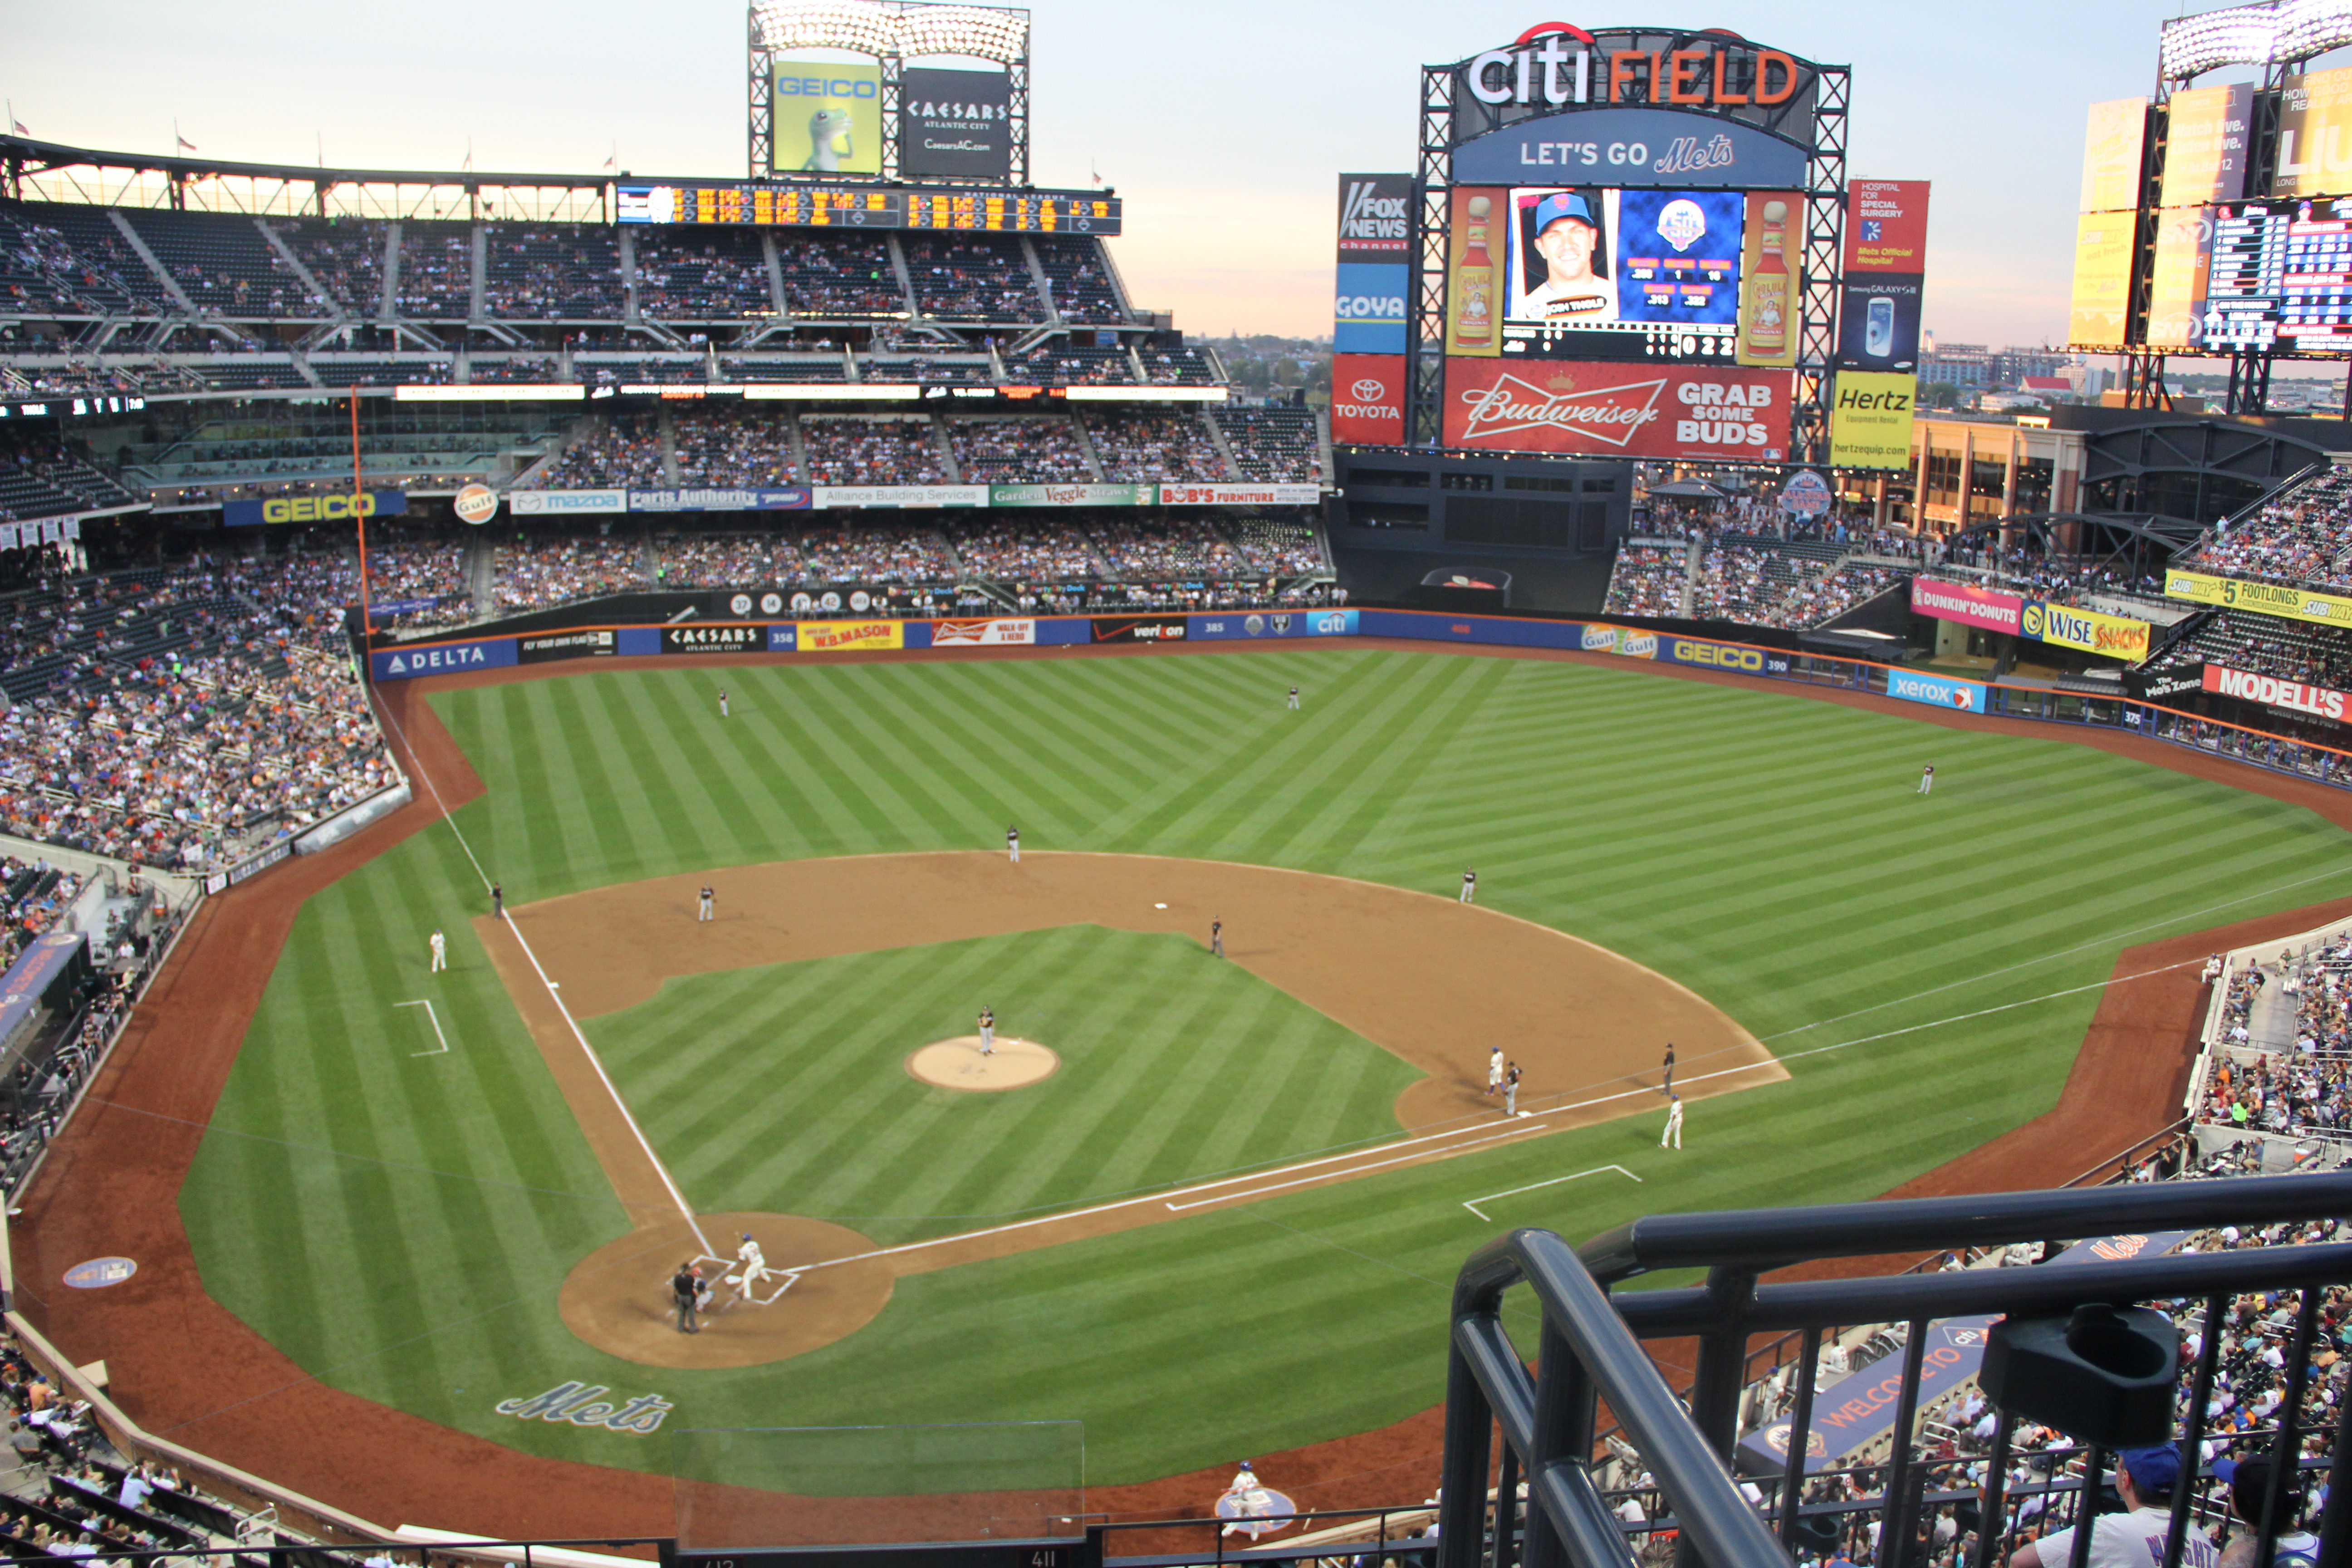 Citi Field Photo By Stacy Podelski